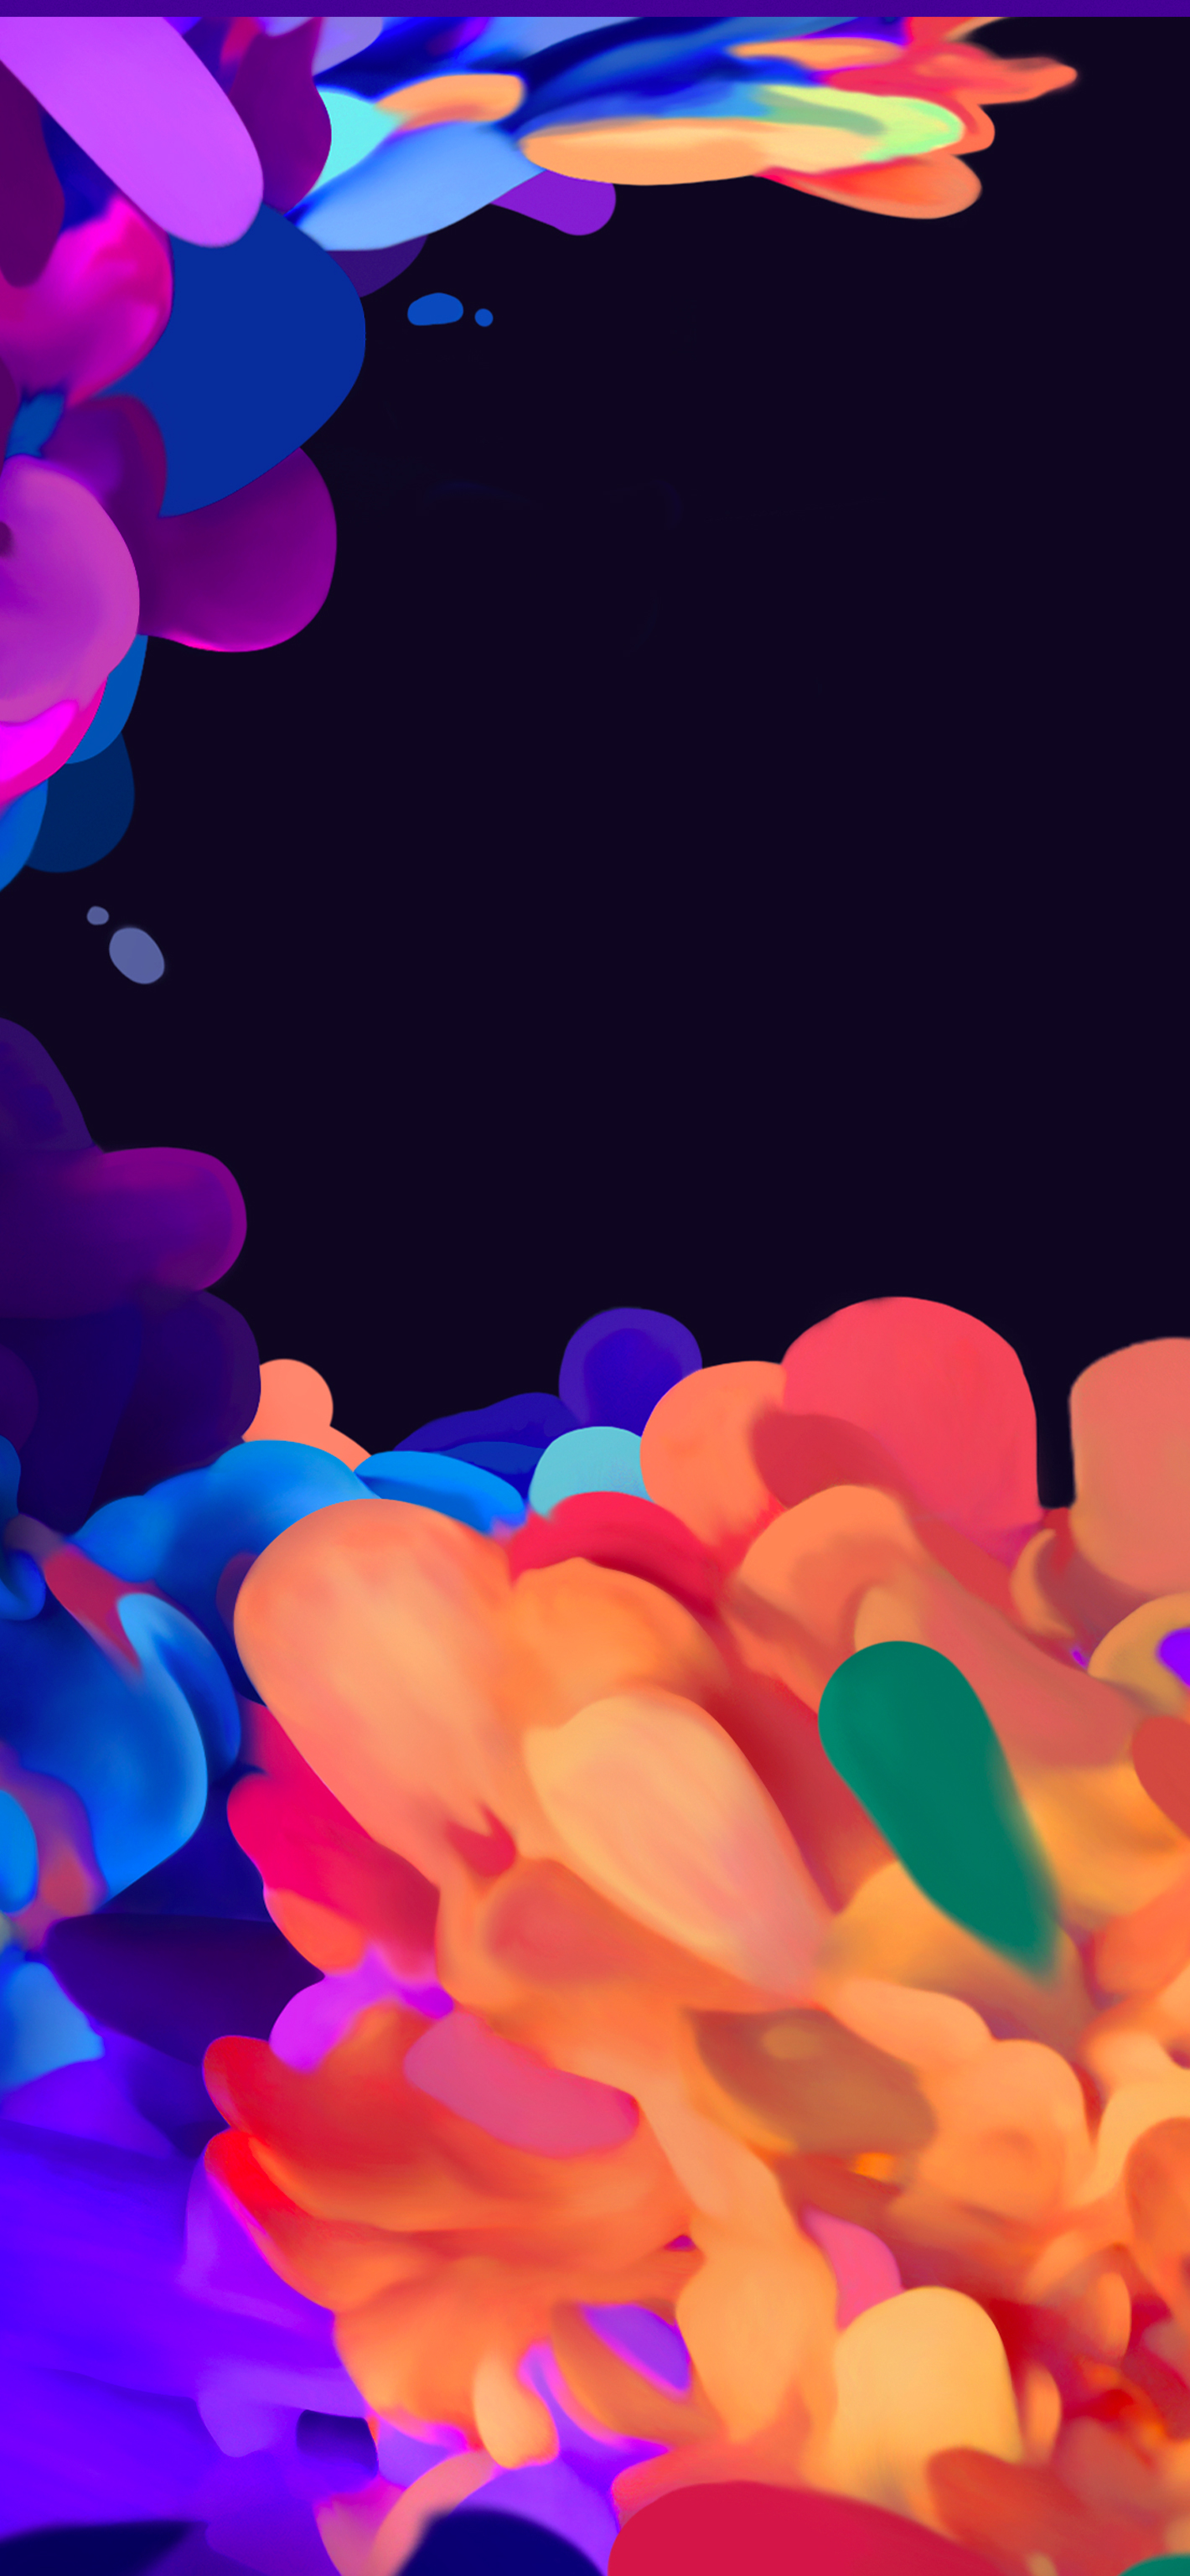 Painted Petals From Galaxy S20 Fe Wallpapers Central